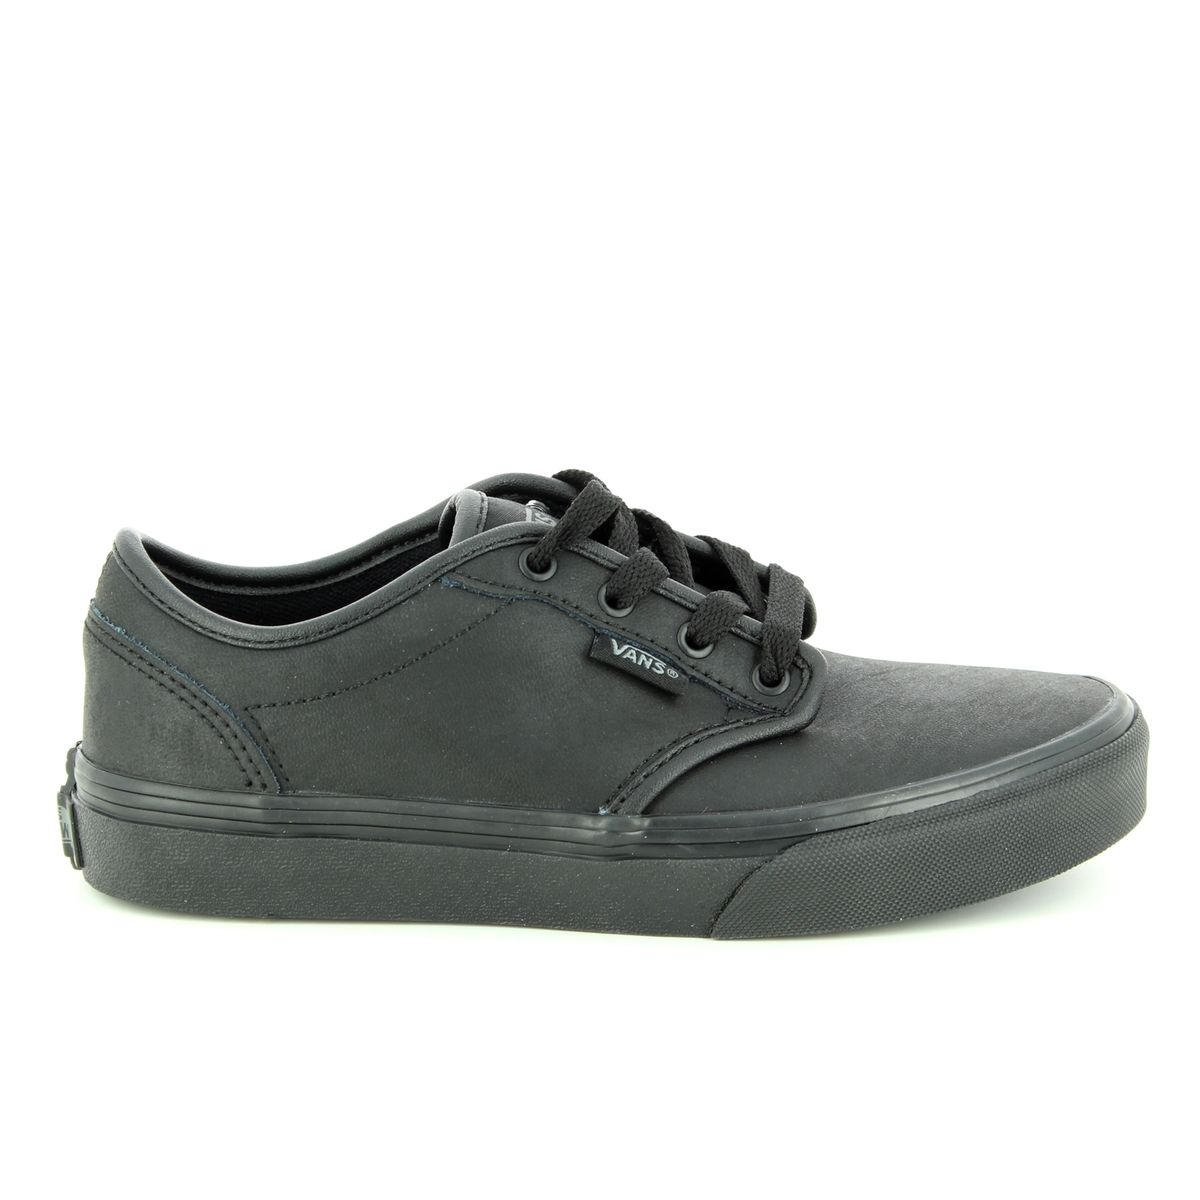 075f4e4ce Vans Trainers - Black - V003Z9KNX ATWOOD YOUTH LEATHER